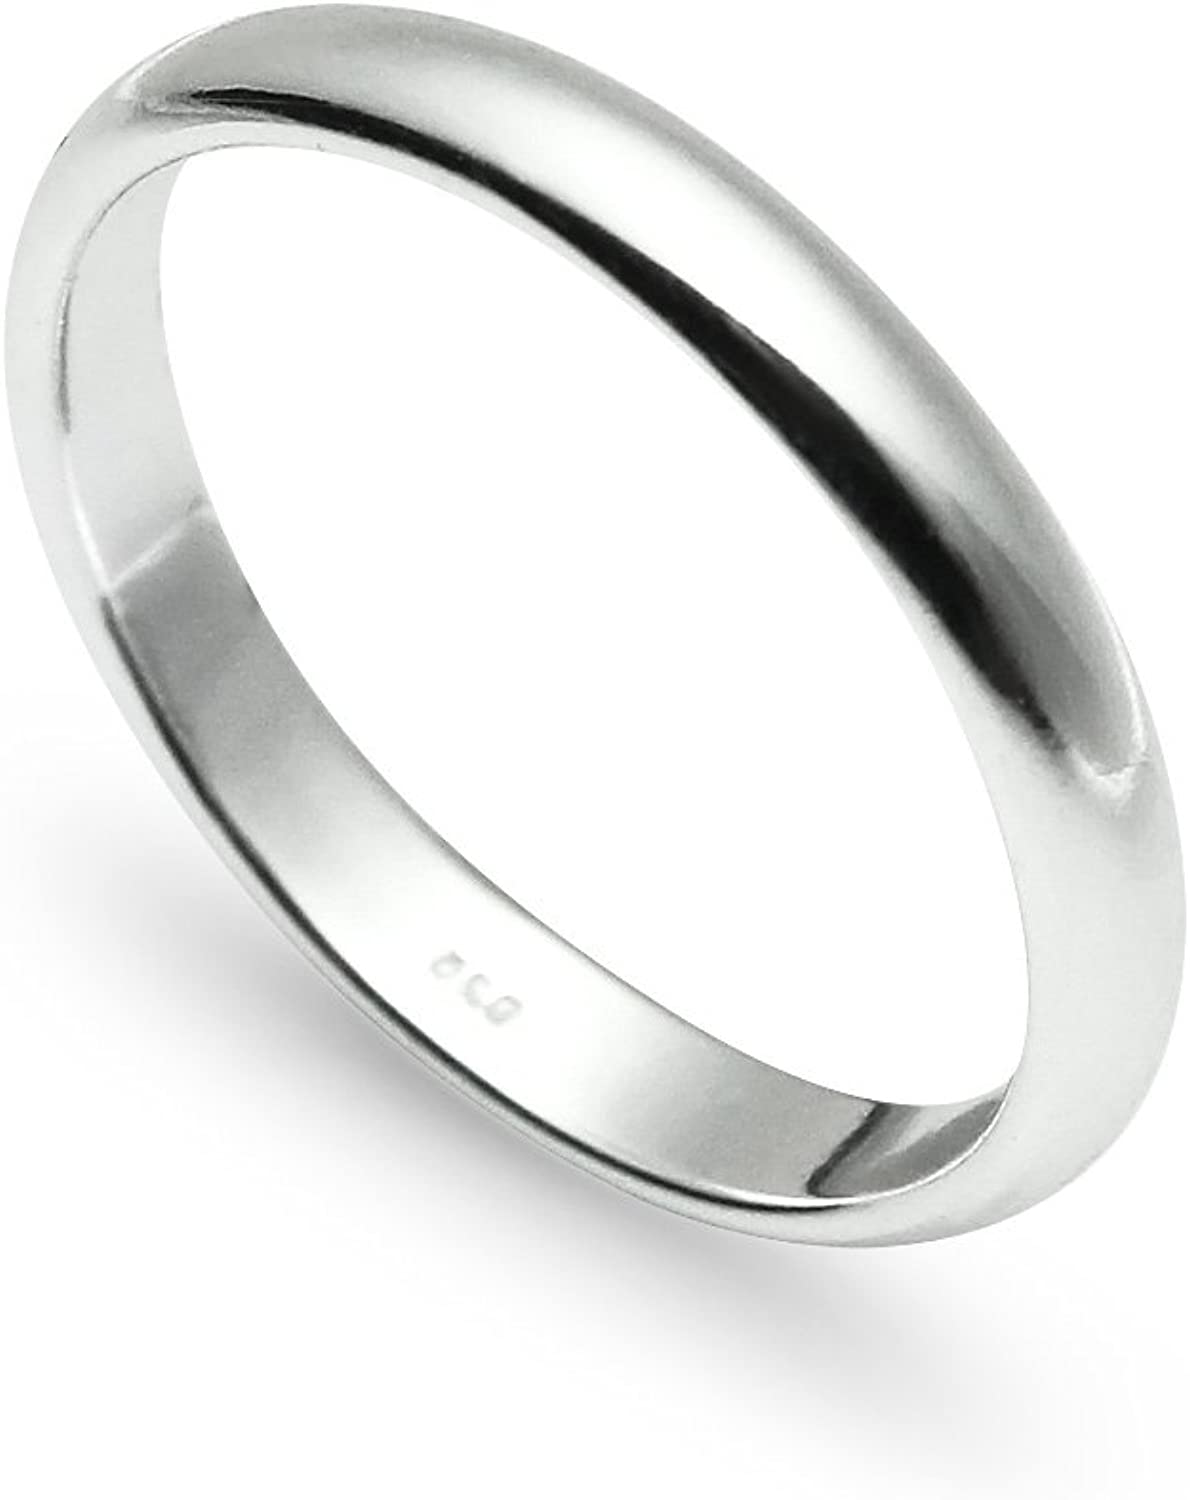 Nine2Five 925 Sterling Silver Wedding Ring | High Polished Plain 3mm Comfort Band | Full & Half Sizes 5-14